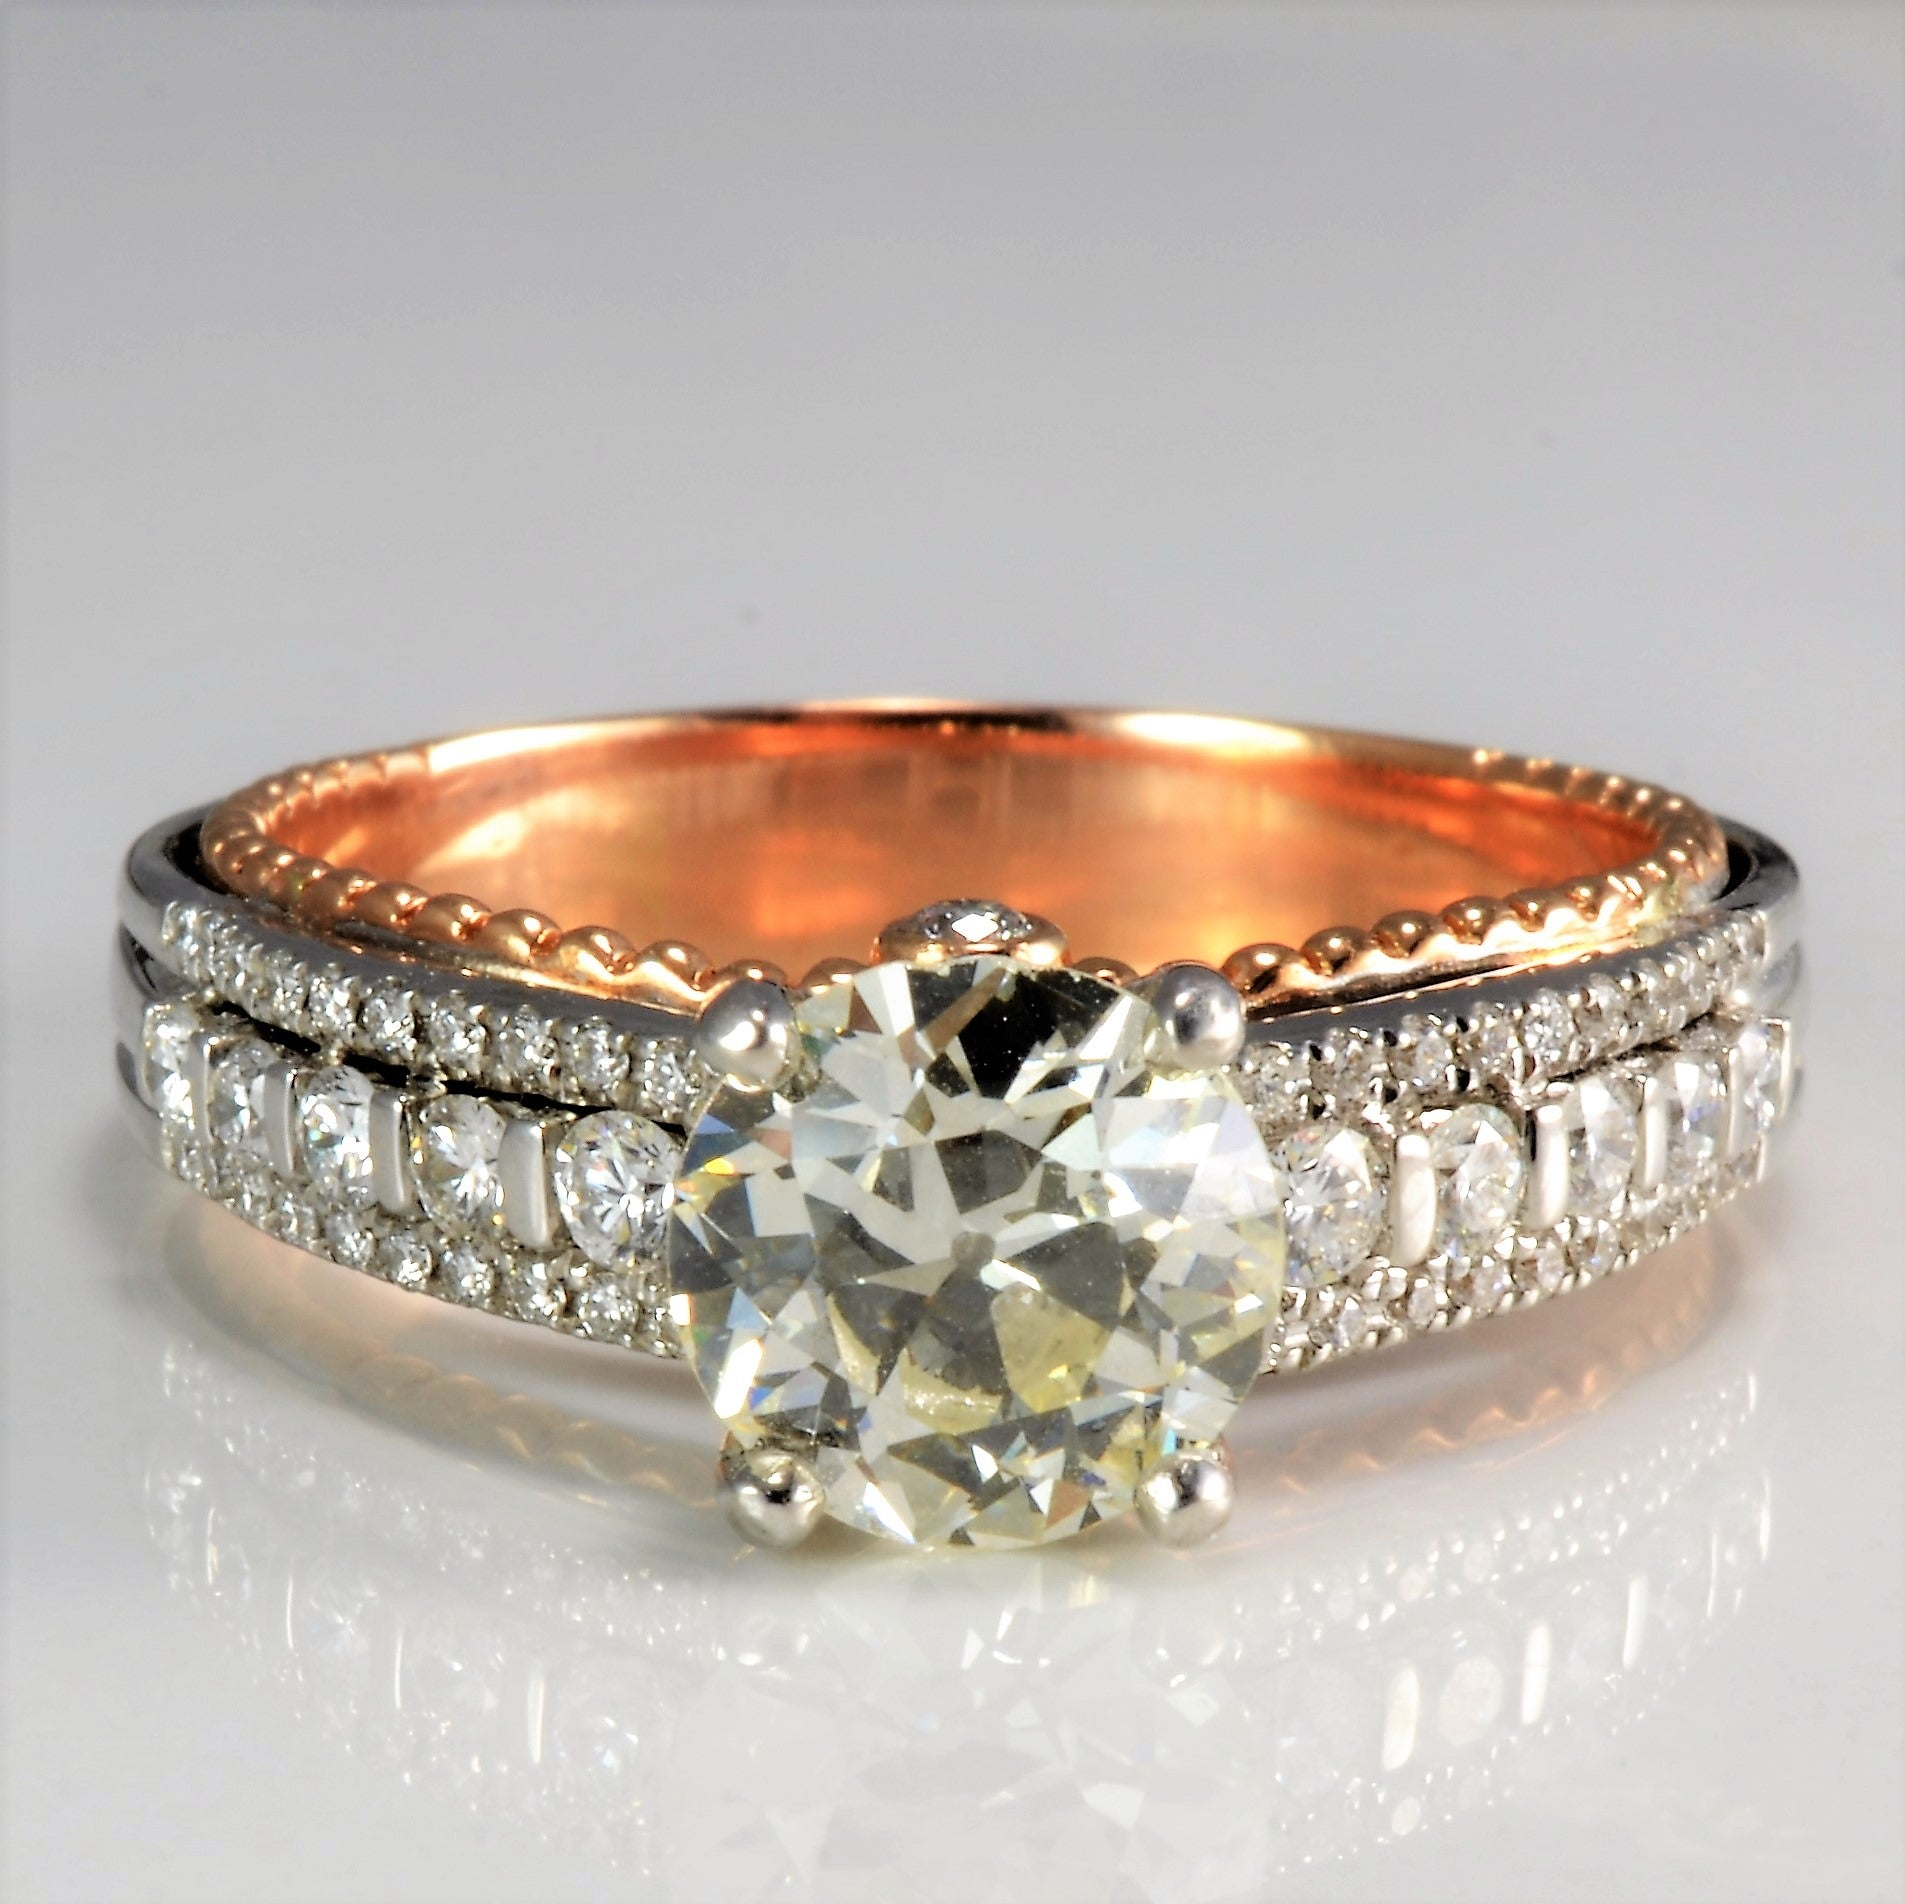 Beautiful Cathedral Set Diamond Engagement Ring | 2.32 ctw, SZ 10 |